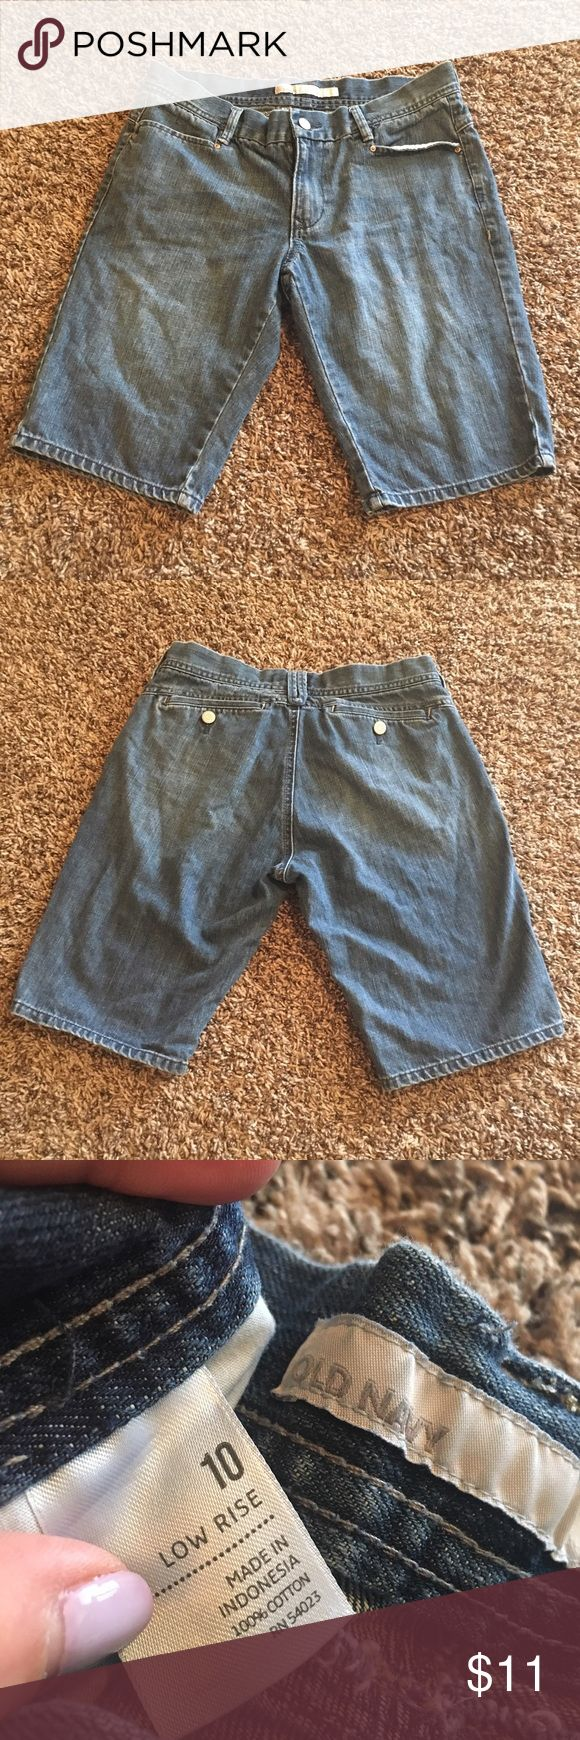 Women's Old Navy denim shorts. Size 10 Women's old navy low rise rise denim shorts in great condition. Size 10. Make an offer :) Old Navy Shorts Jean Shorts